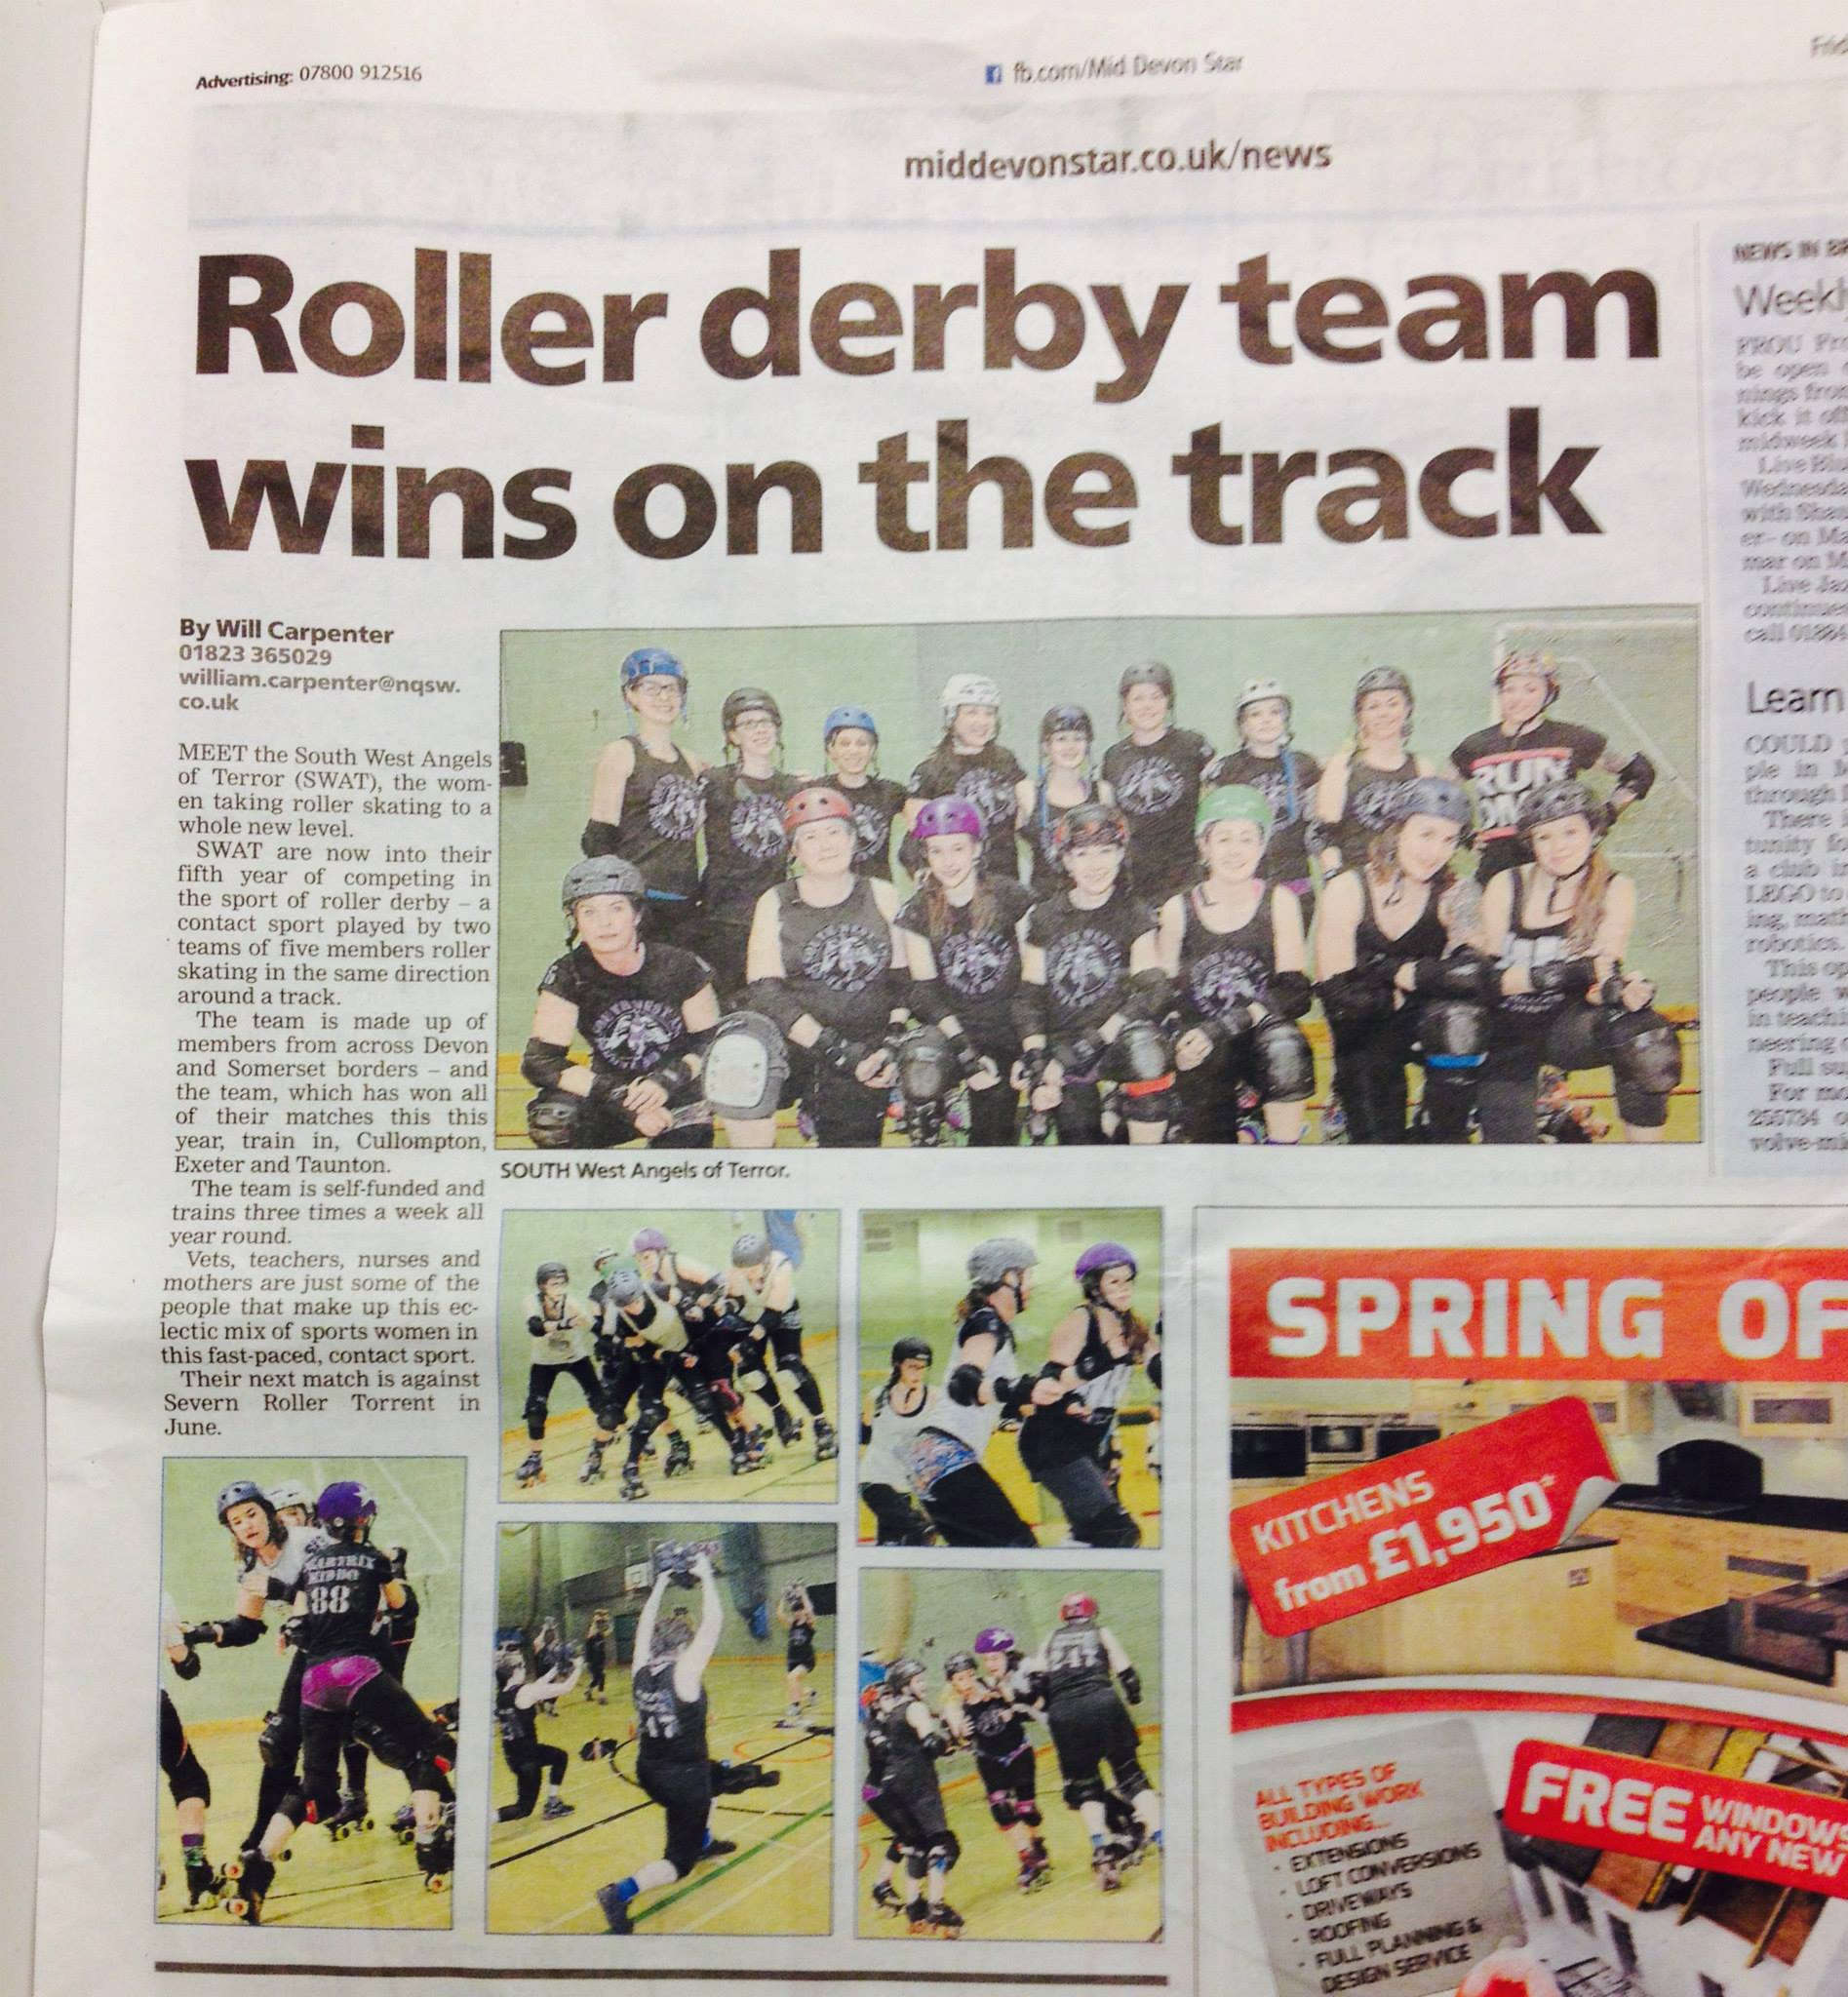 Roller derby team wins on track